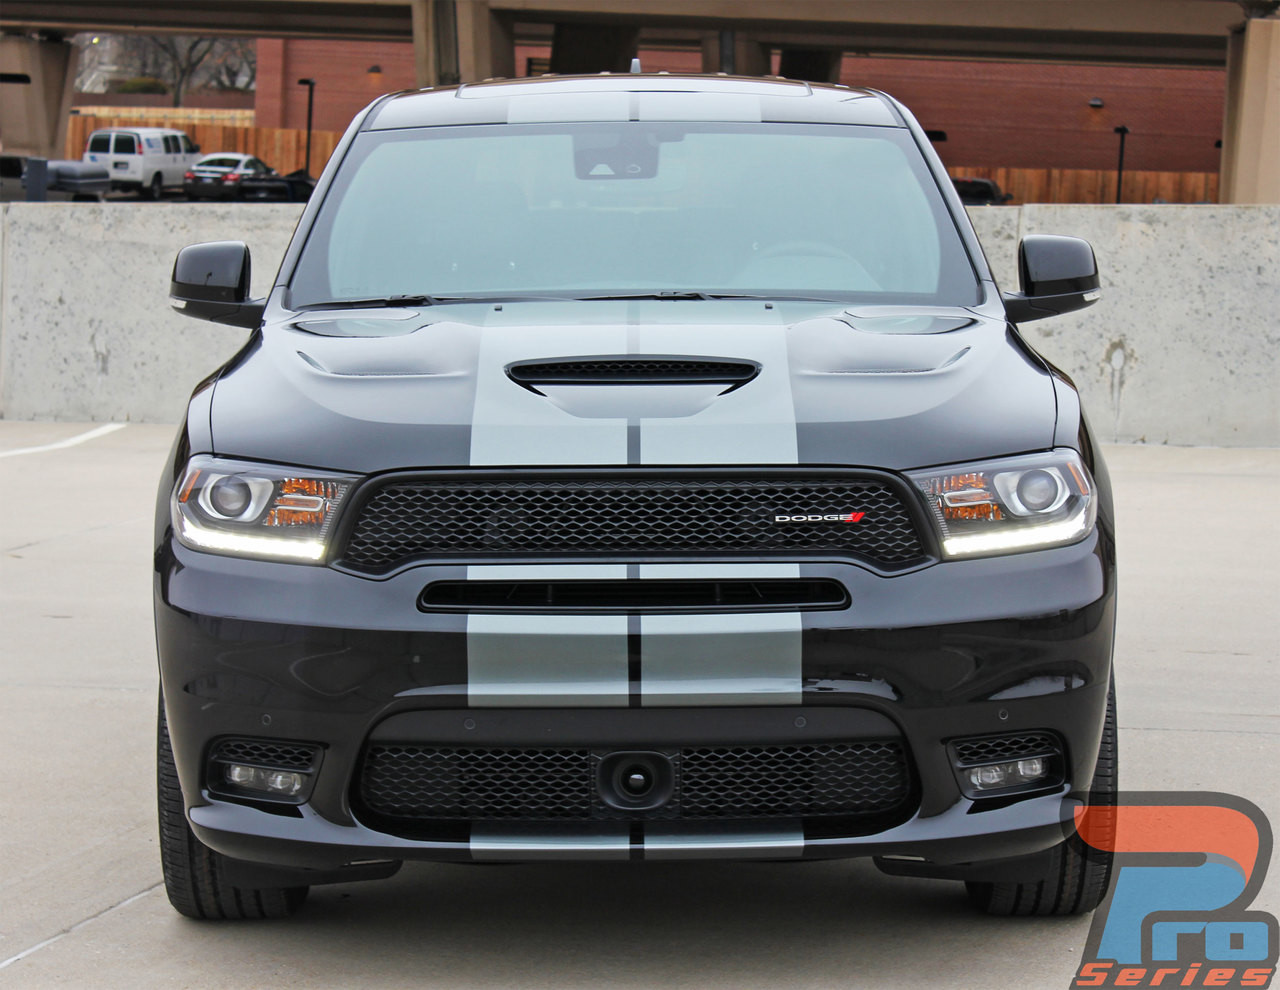 Dodge Durango Srt Racing Stripes Durango Rally 2014 2018 2019 2020 2021